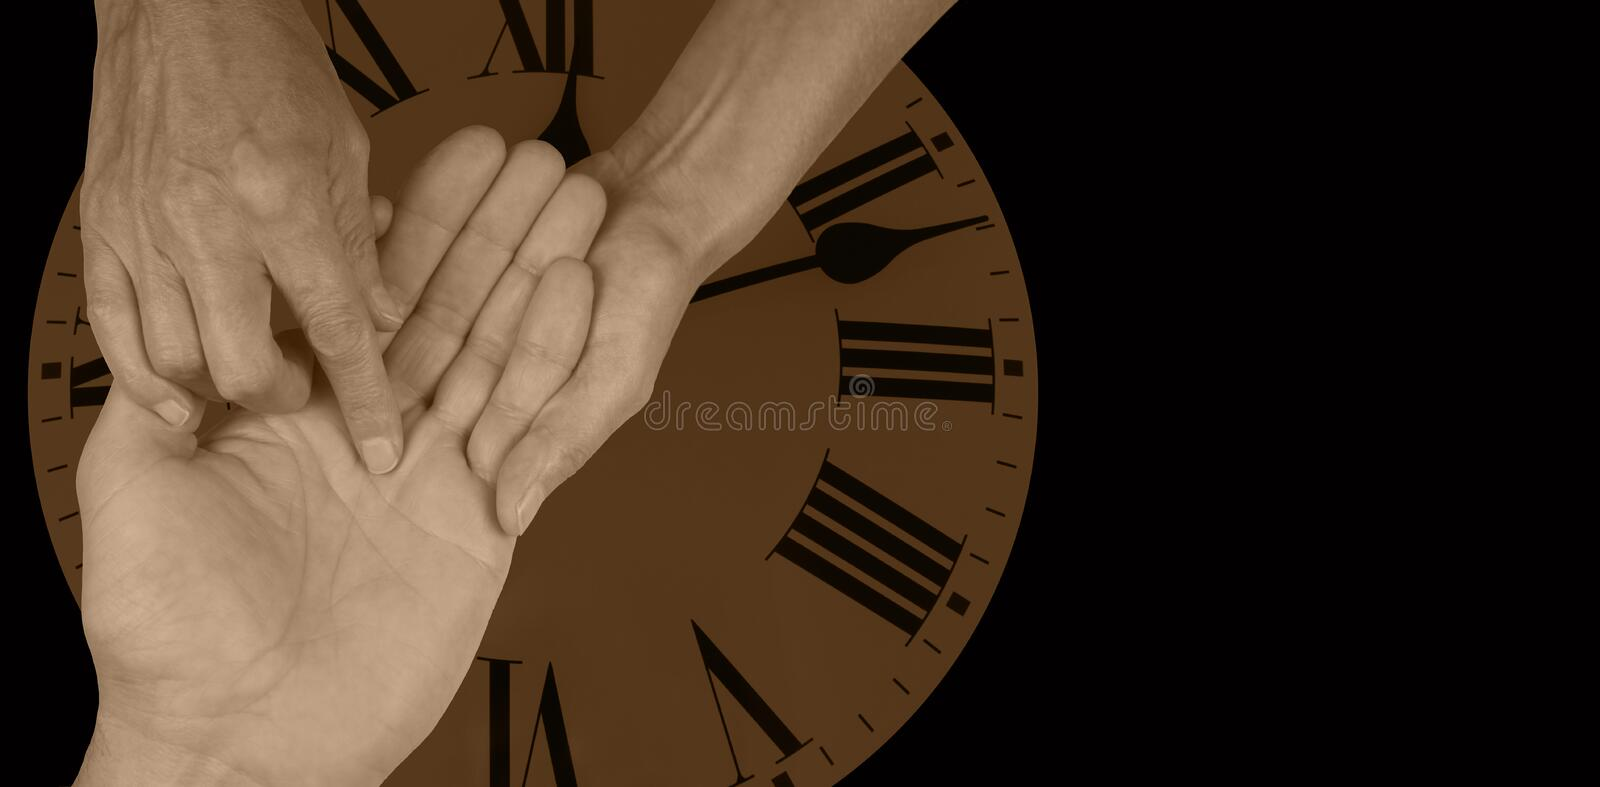 Time will tell - Palmistry website banner royalty free stock photos